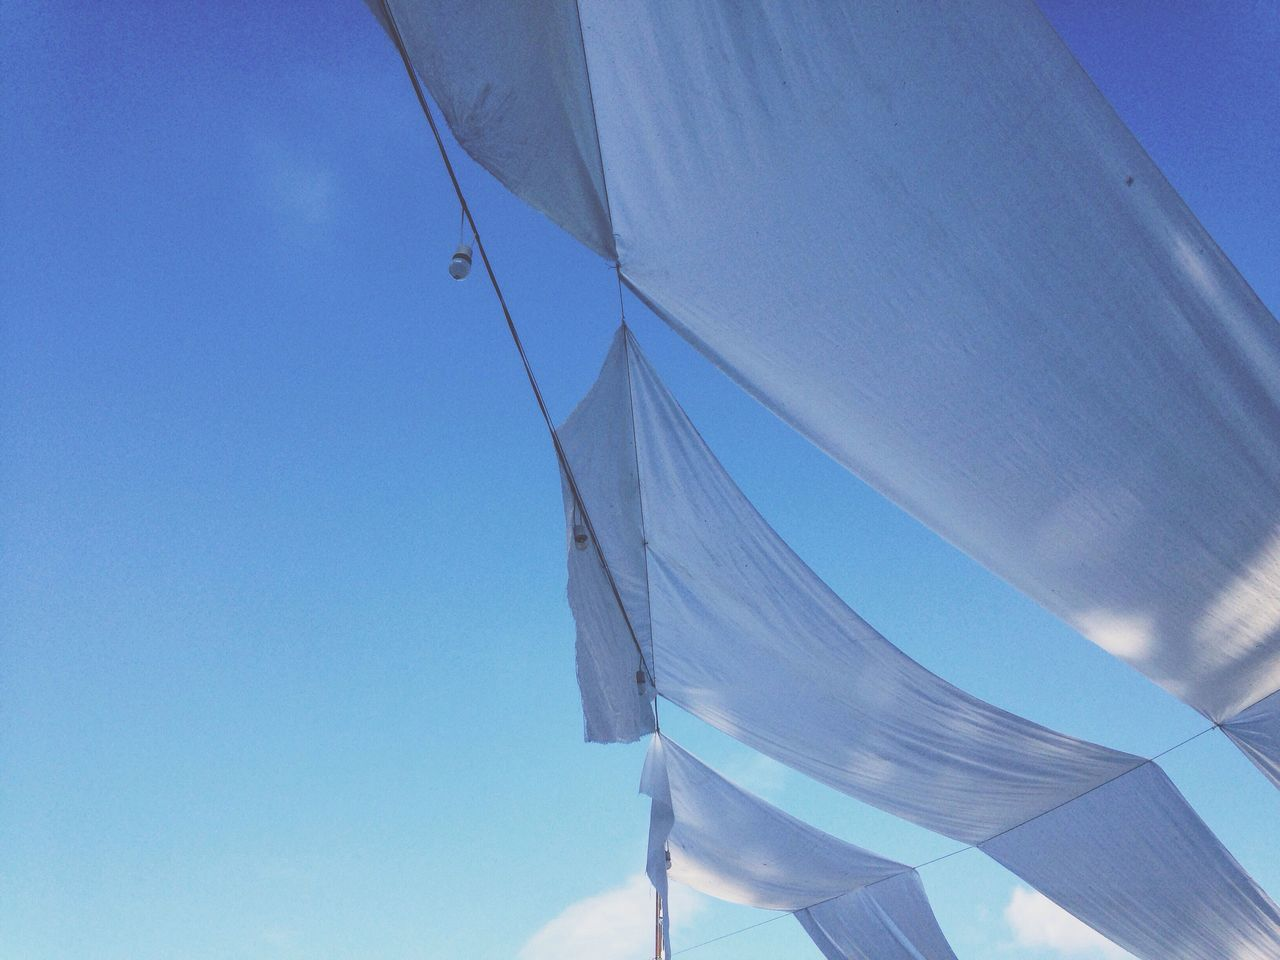 blue, low angle view, outdoors, day, no people, sky, clear sky, nature, close-up